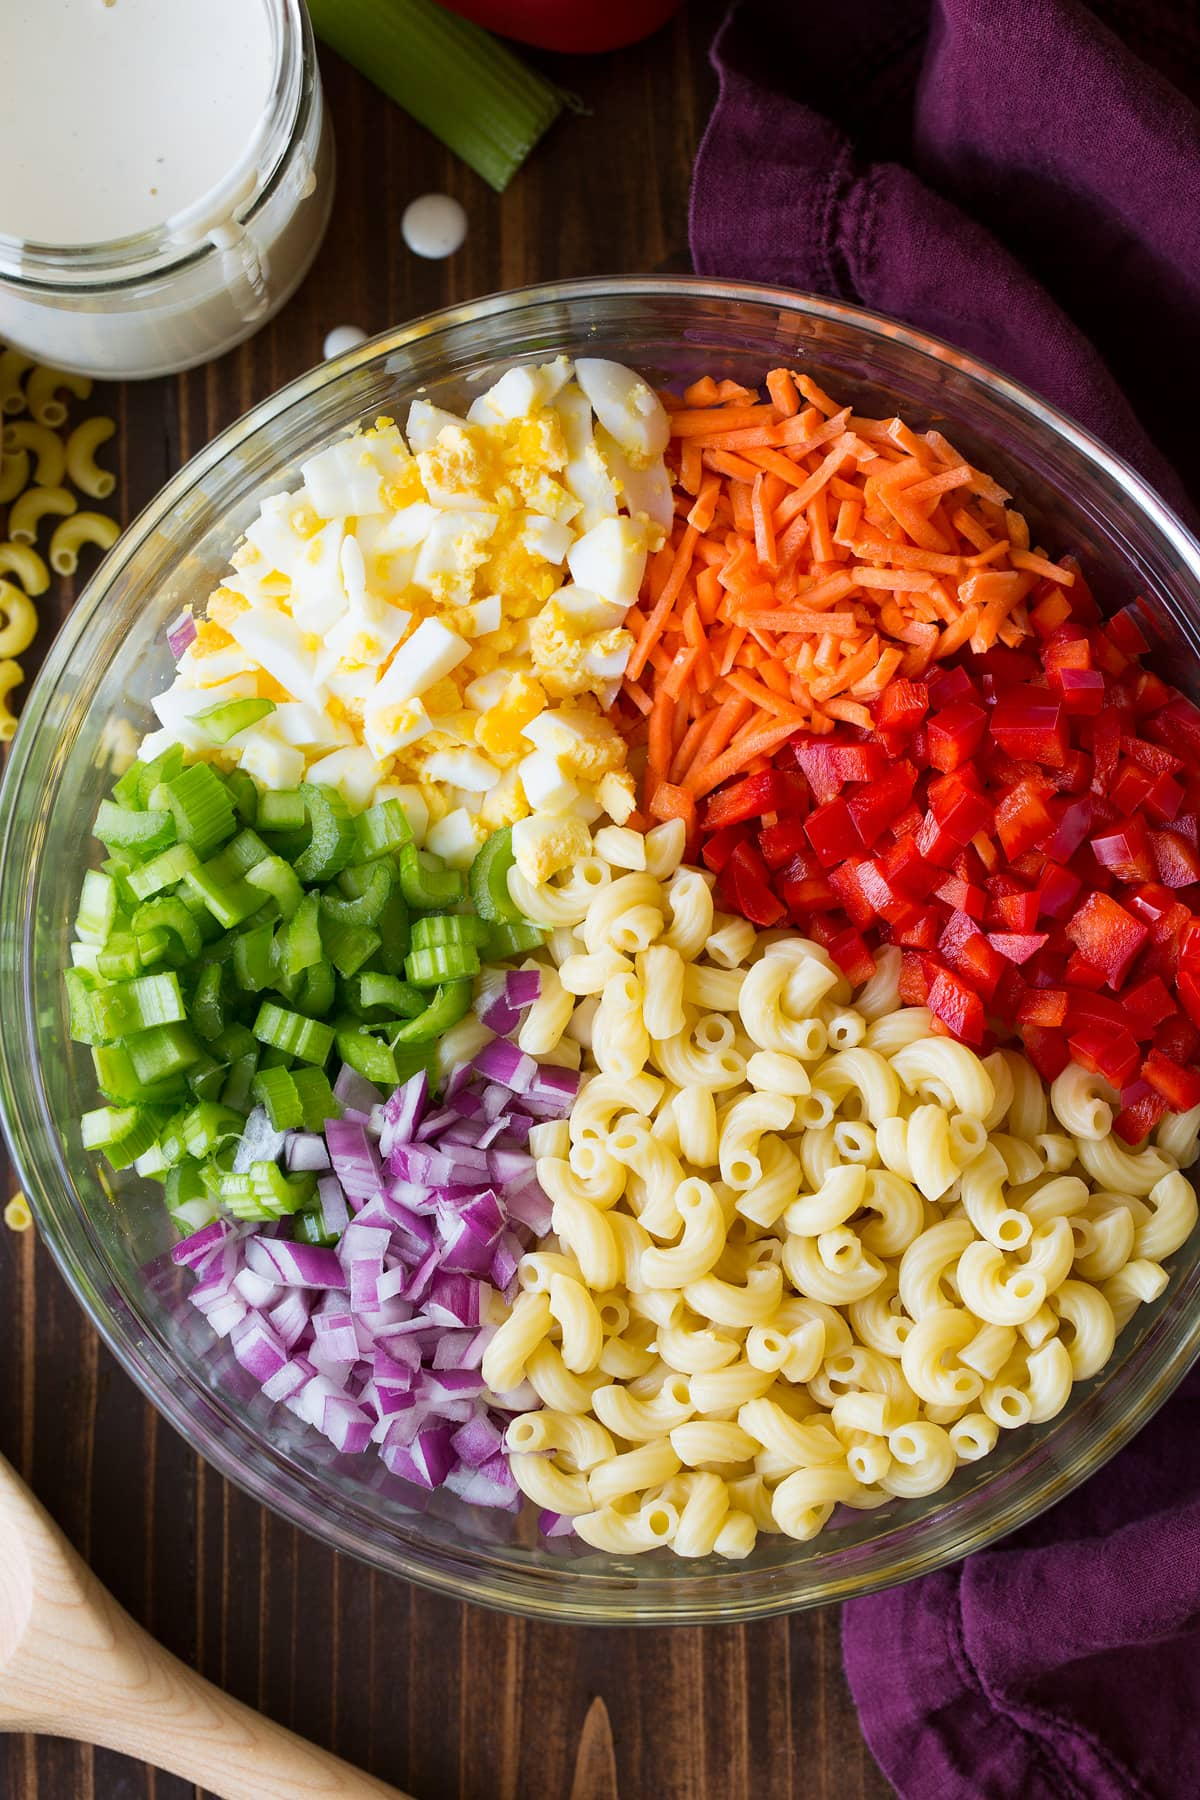 Macaroni salad ingredients in a glass bowl before tossing together.